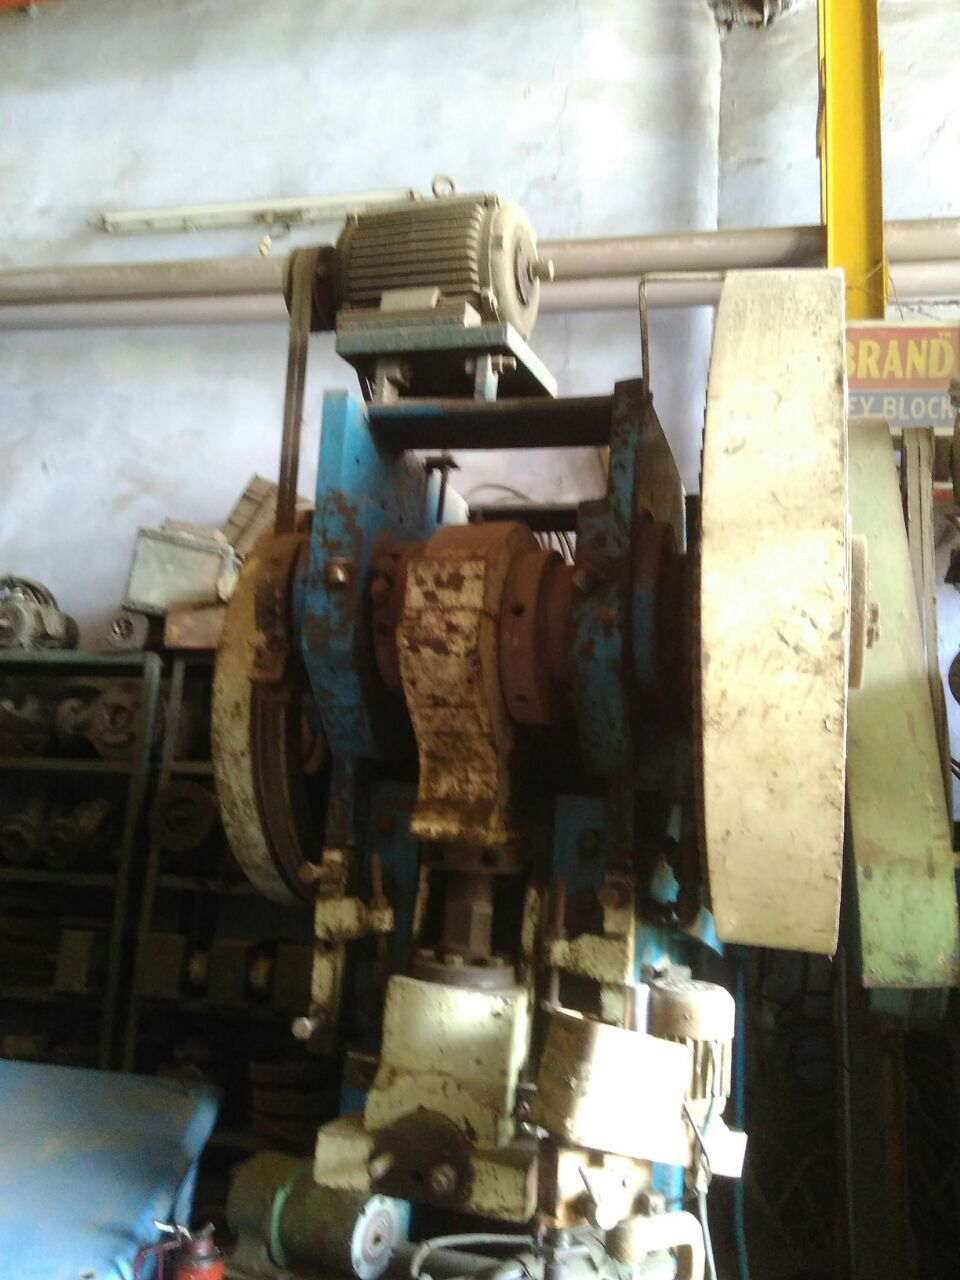 Power press 75 ton